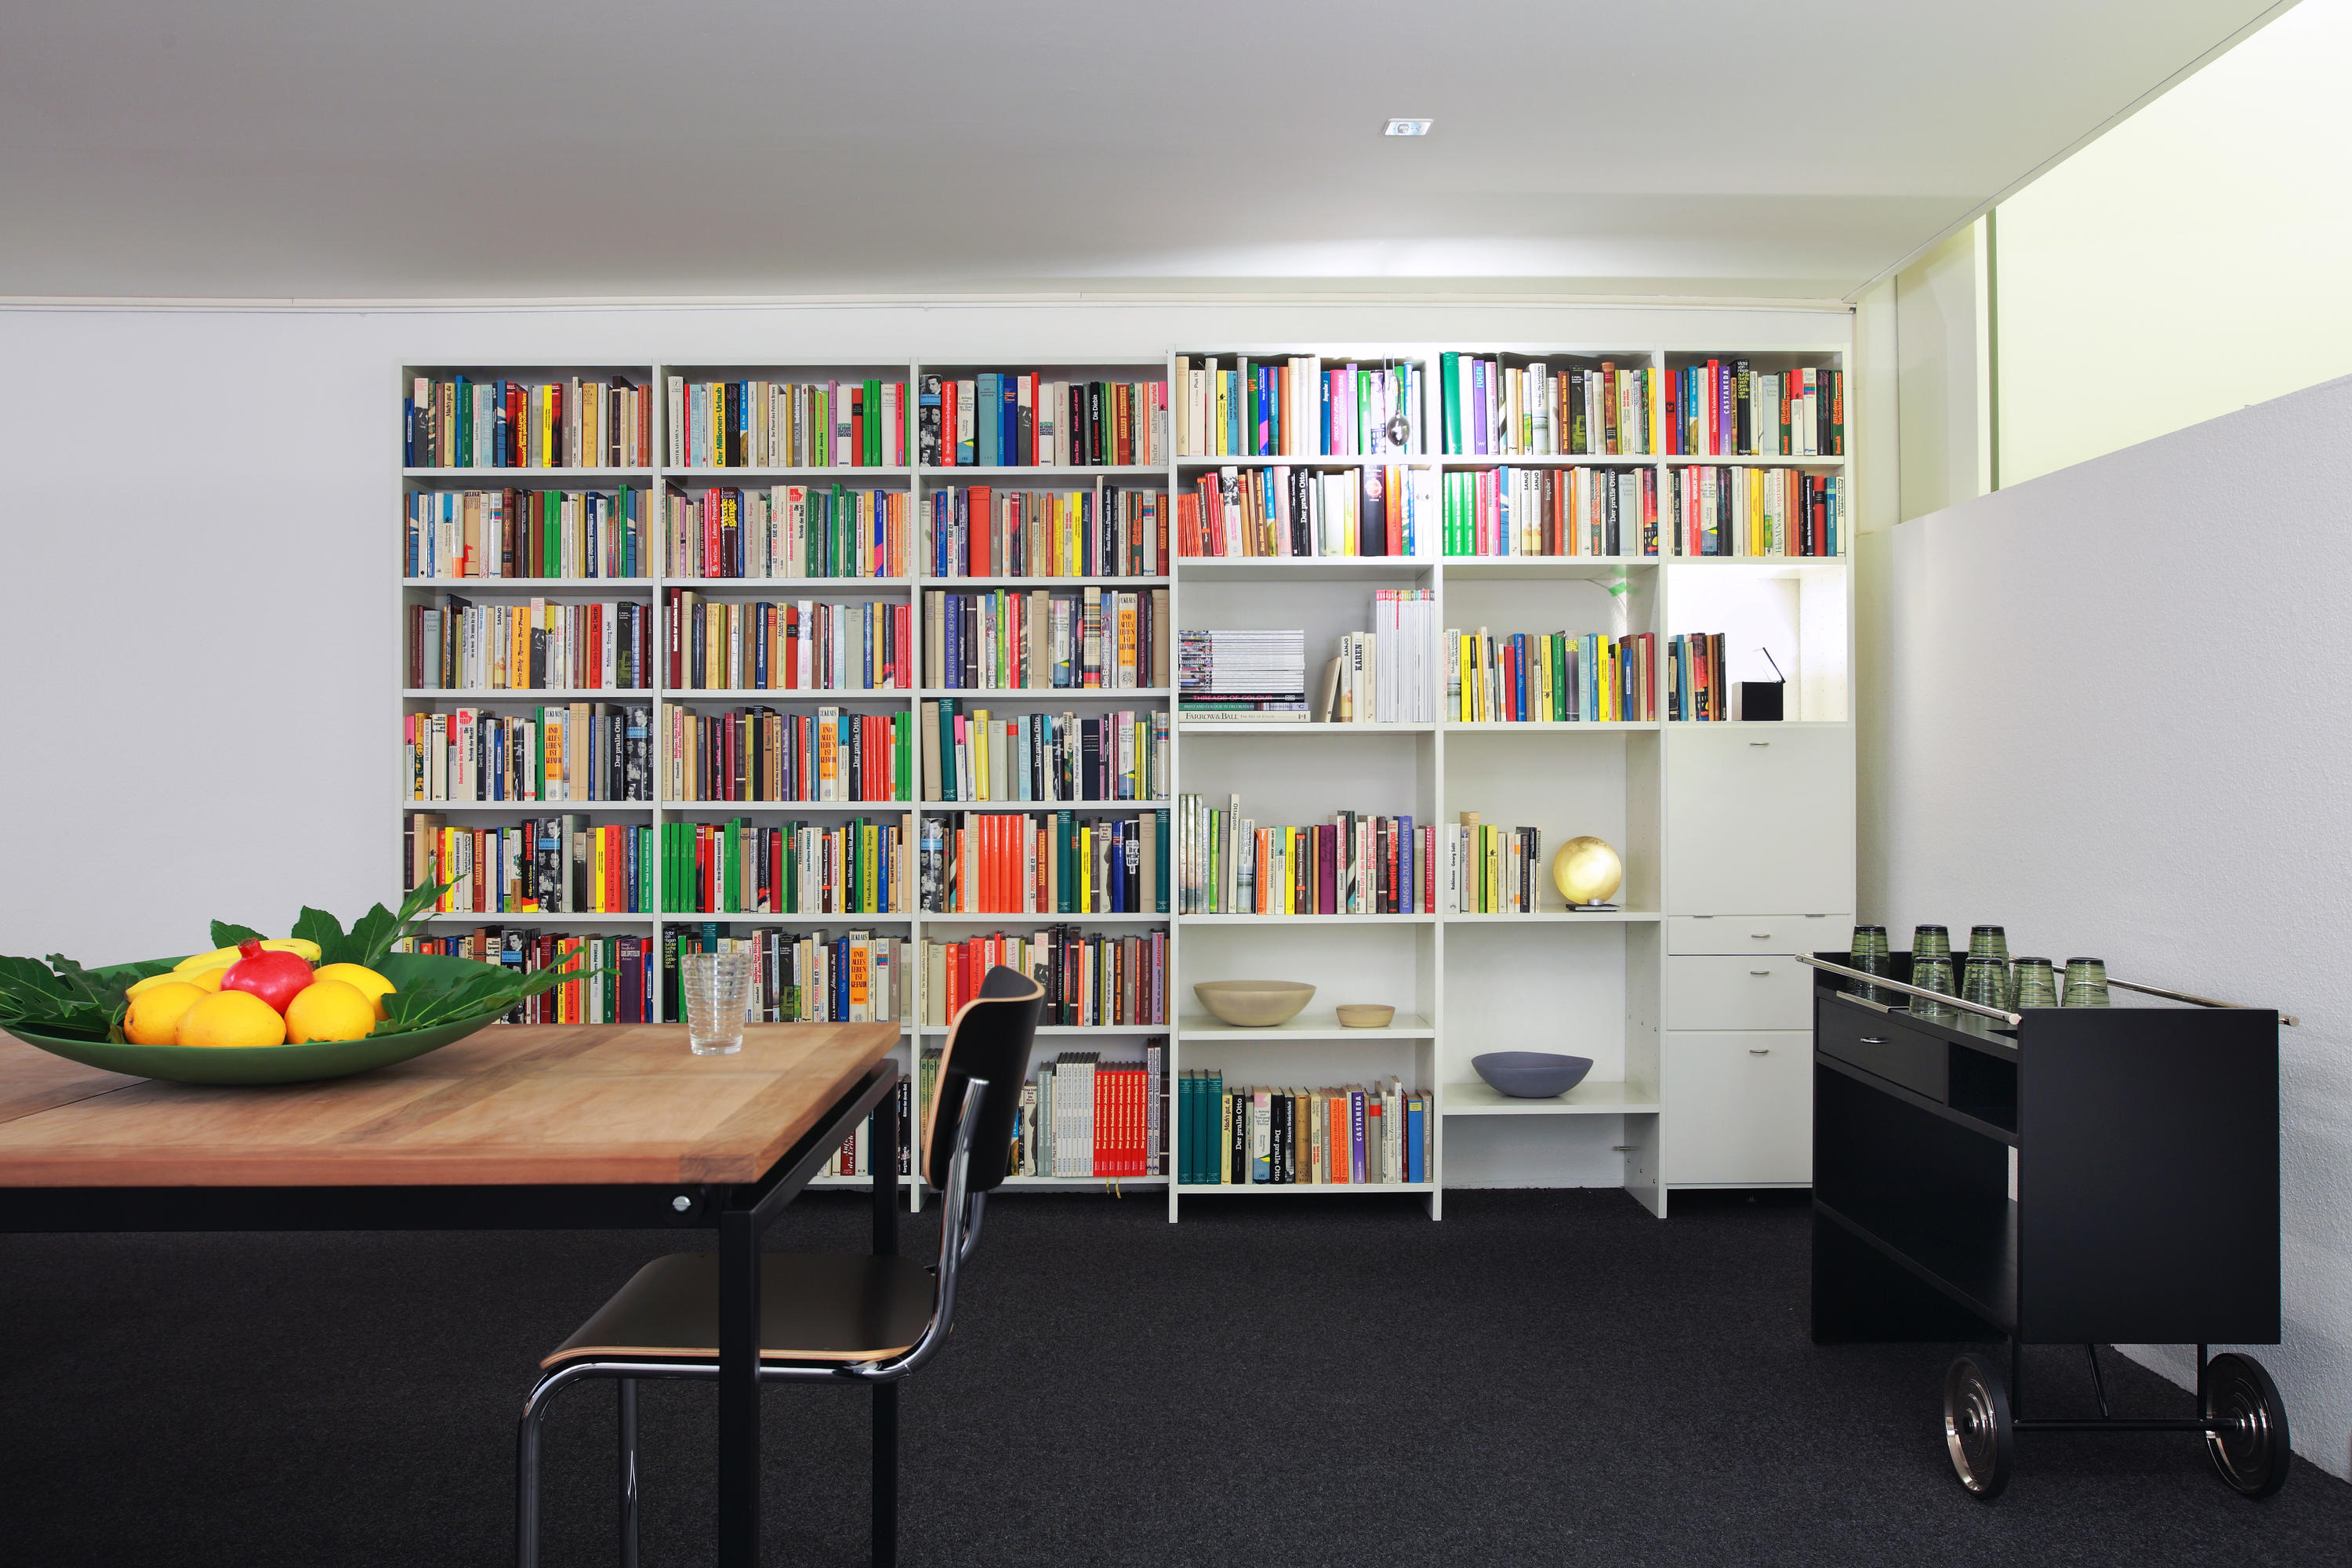 UPW Regal By Wb Form Ag | Office Shelving Systems